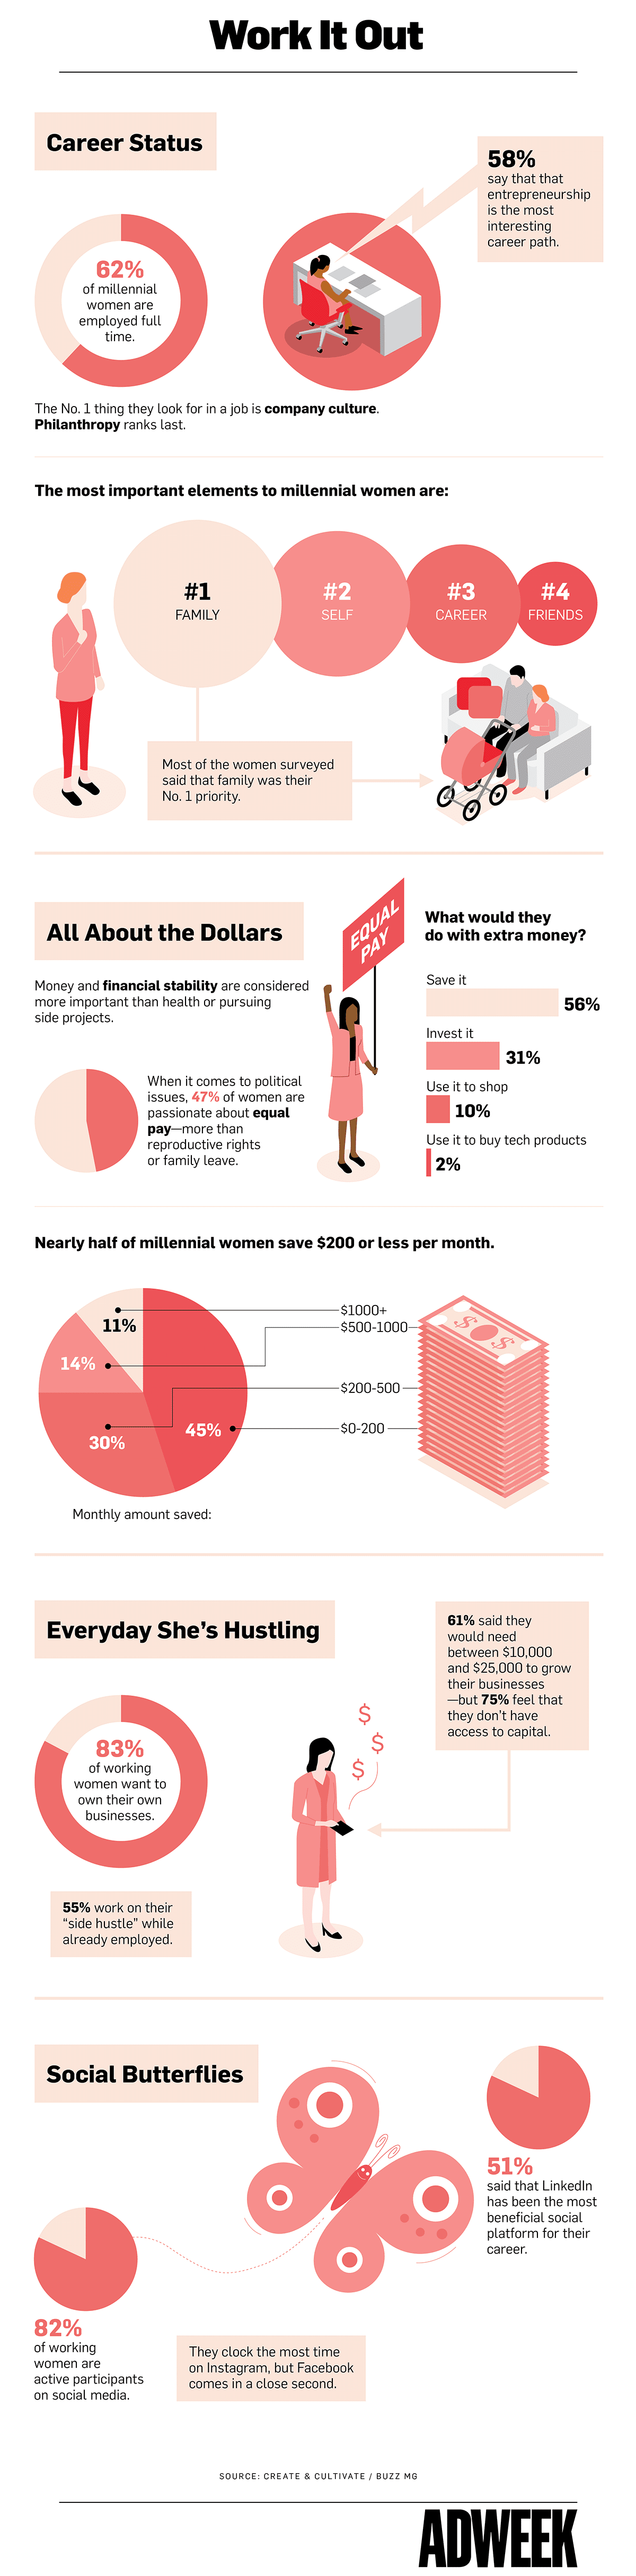 Most Millennial Women Value Entrepreneurship, but They Also Prioritize Family